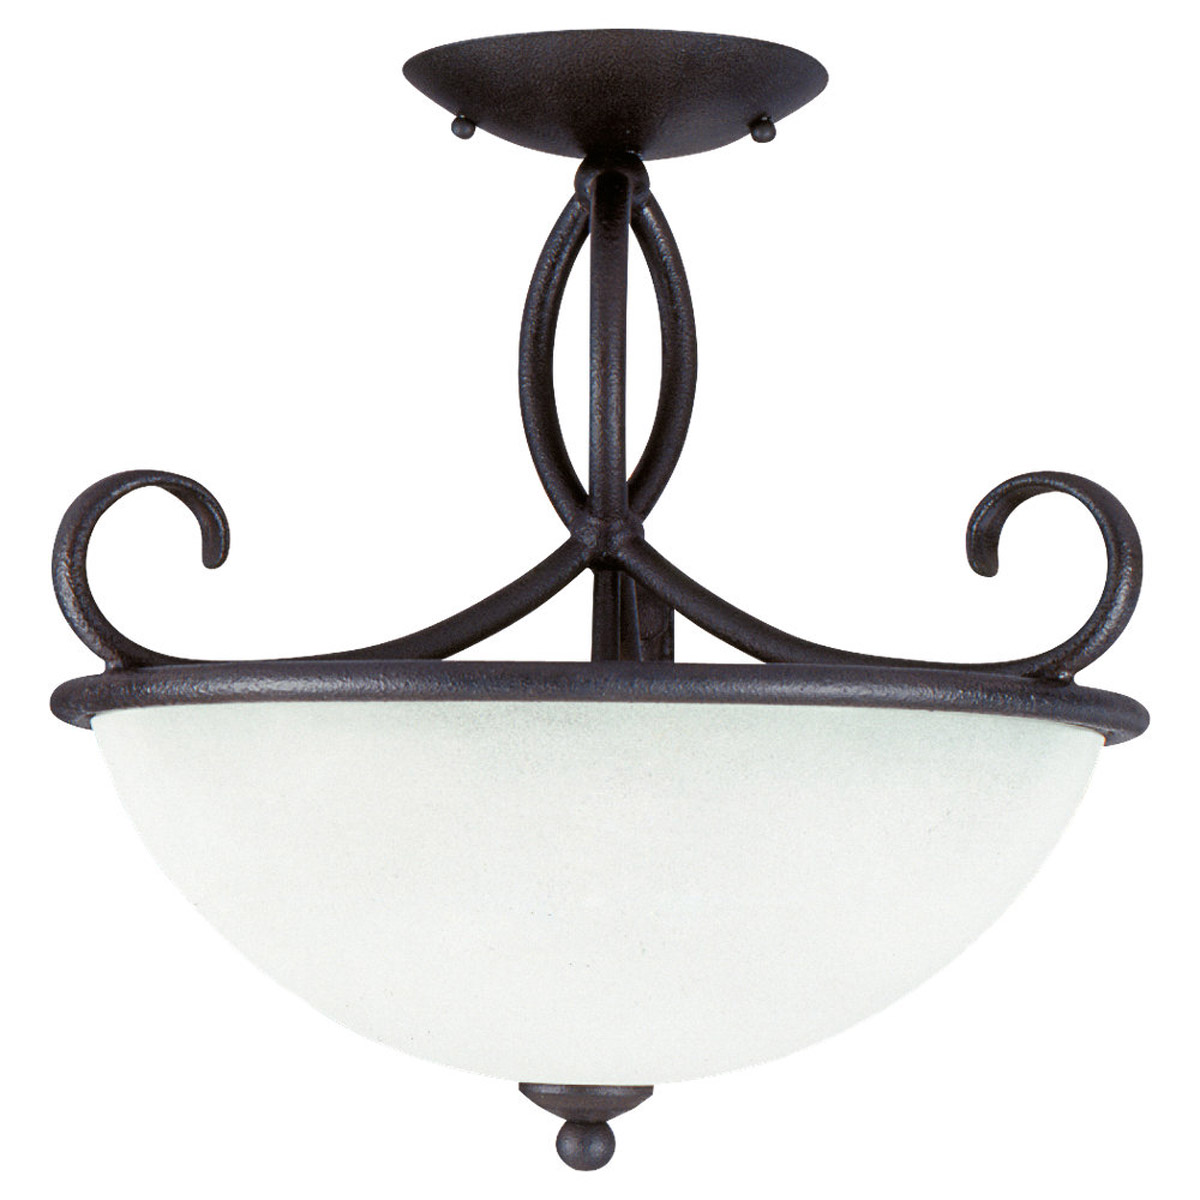 Sea Gull Lighting Pemberton 3 Light Semi-Flush Mount in Peppercorn 75075-799